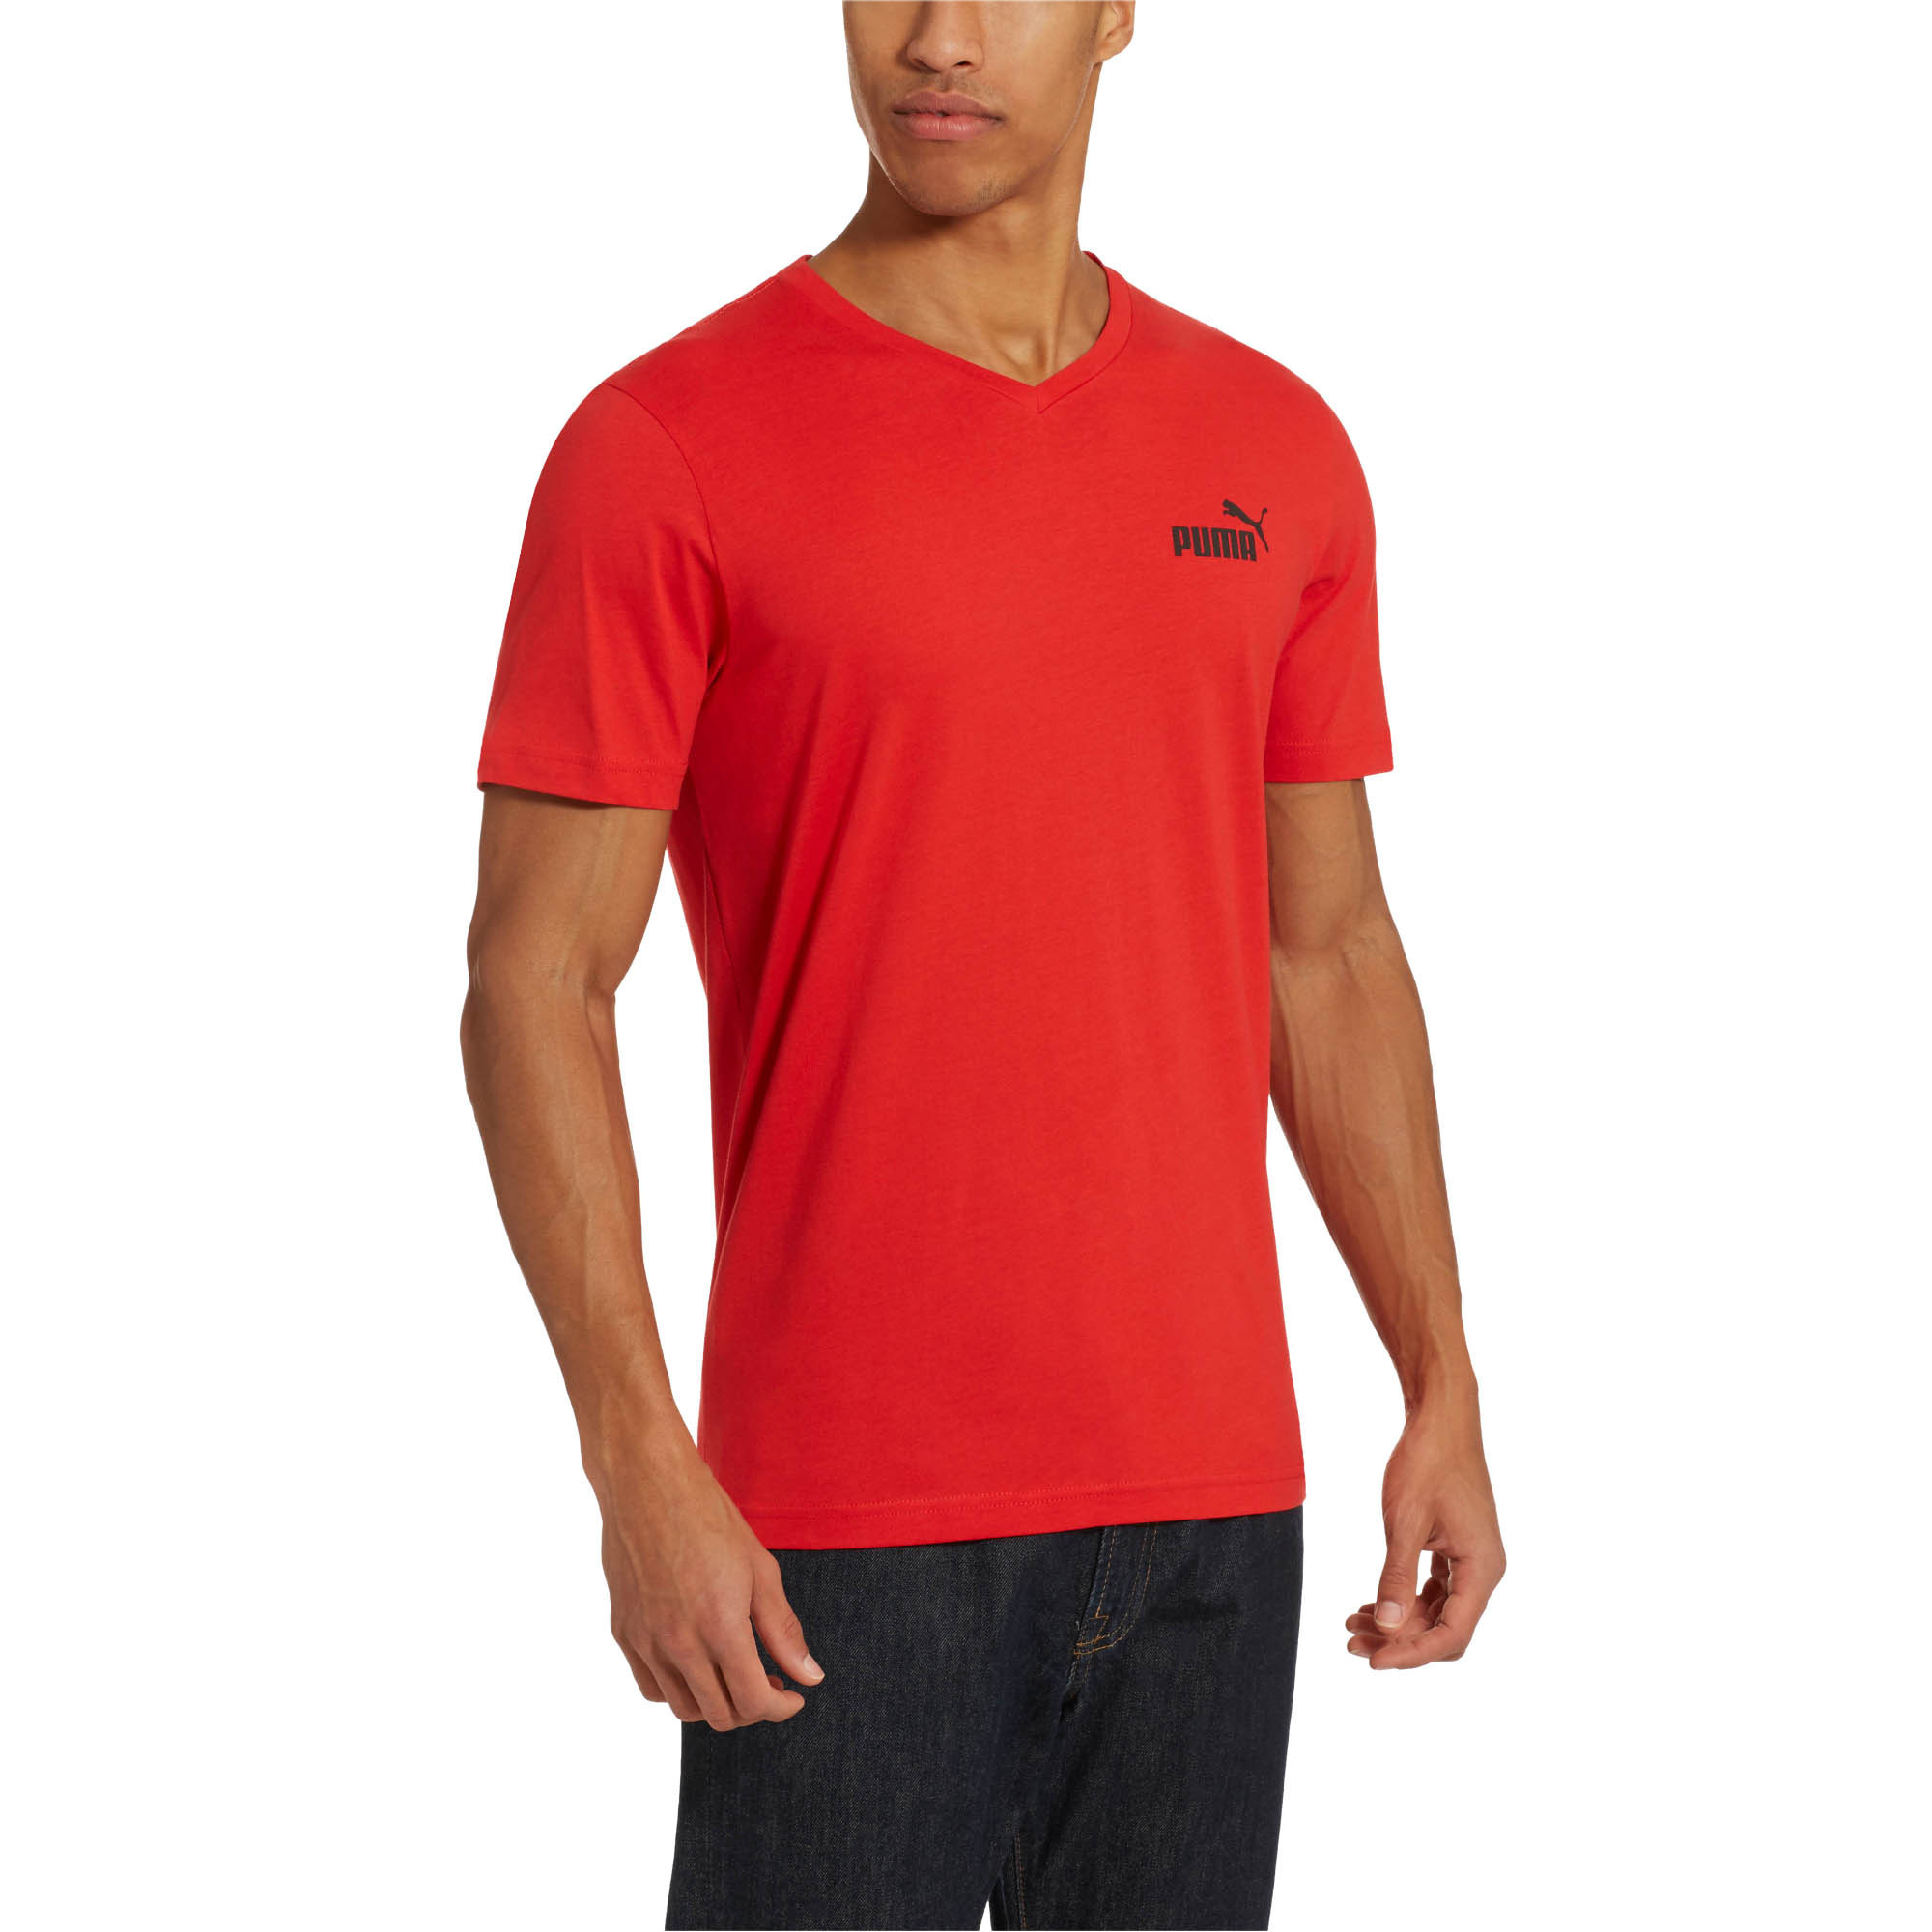 PUMA-Essentials-Men-039-s-V-Neck-Tee-Men-Tee-Basics thumbnail 19